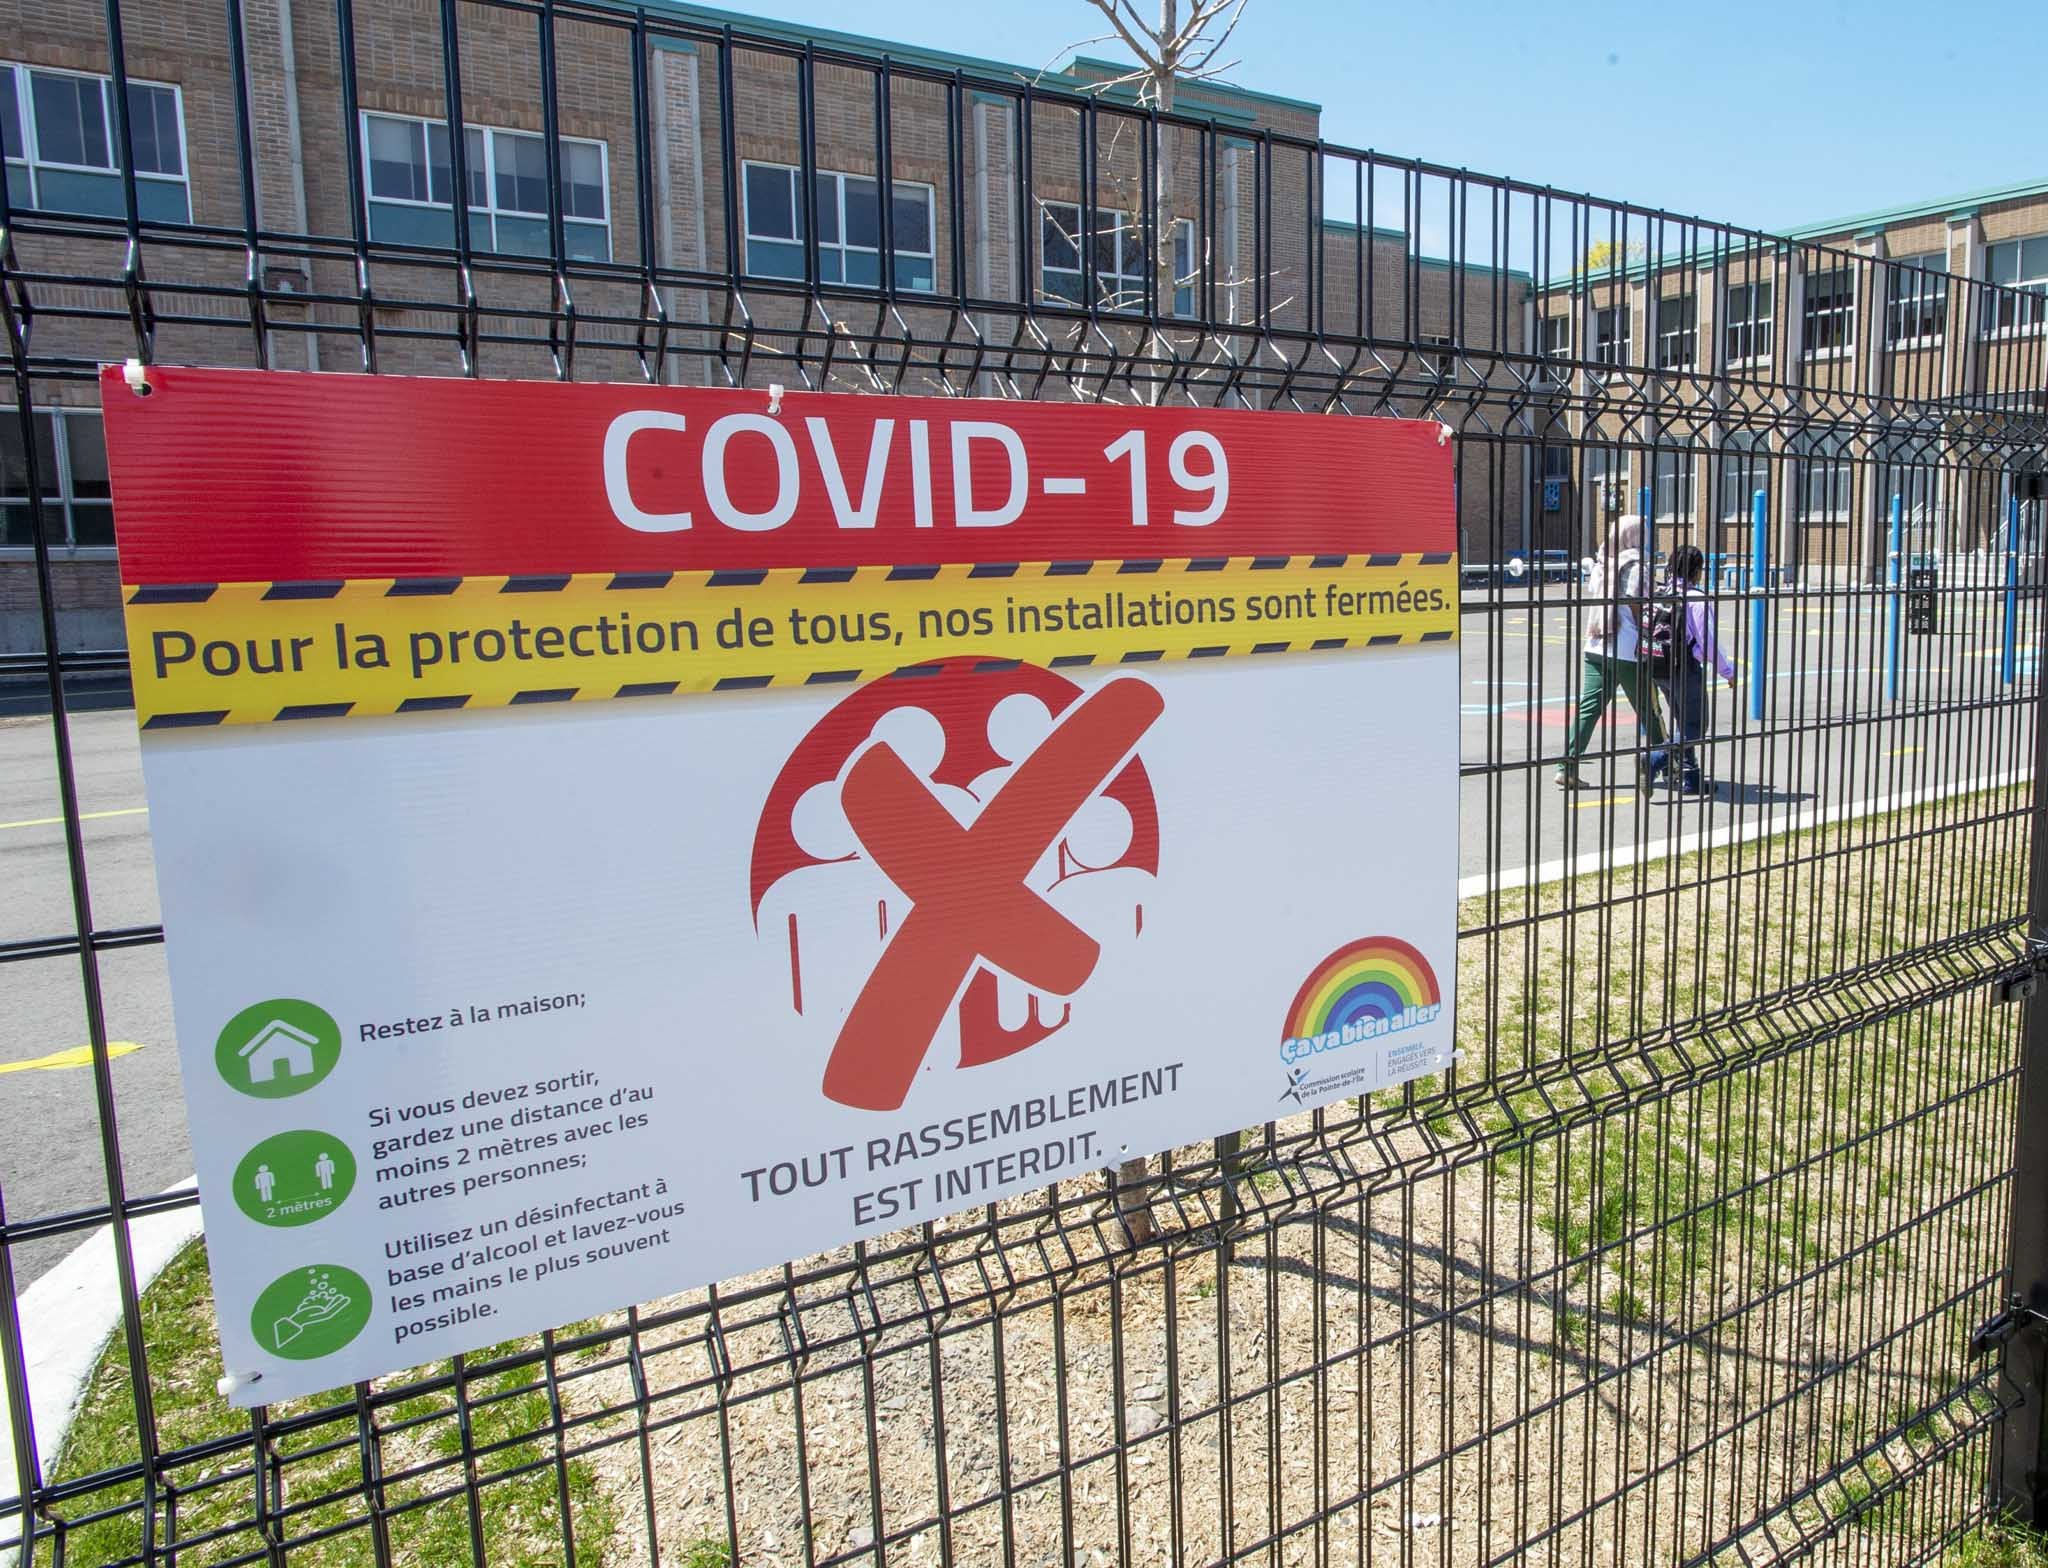 Montreal's education department, which tracked the virus in school communities based on weekly active case counts, said the height of active cases occurred during the last week of May. (Ryan Remiorz / Canadian Press files)